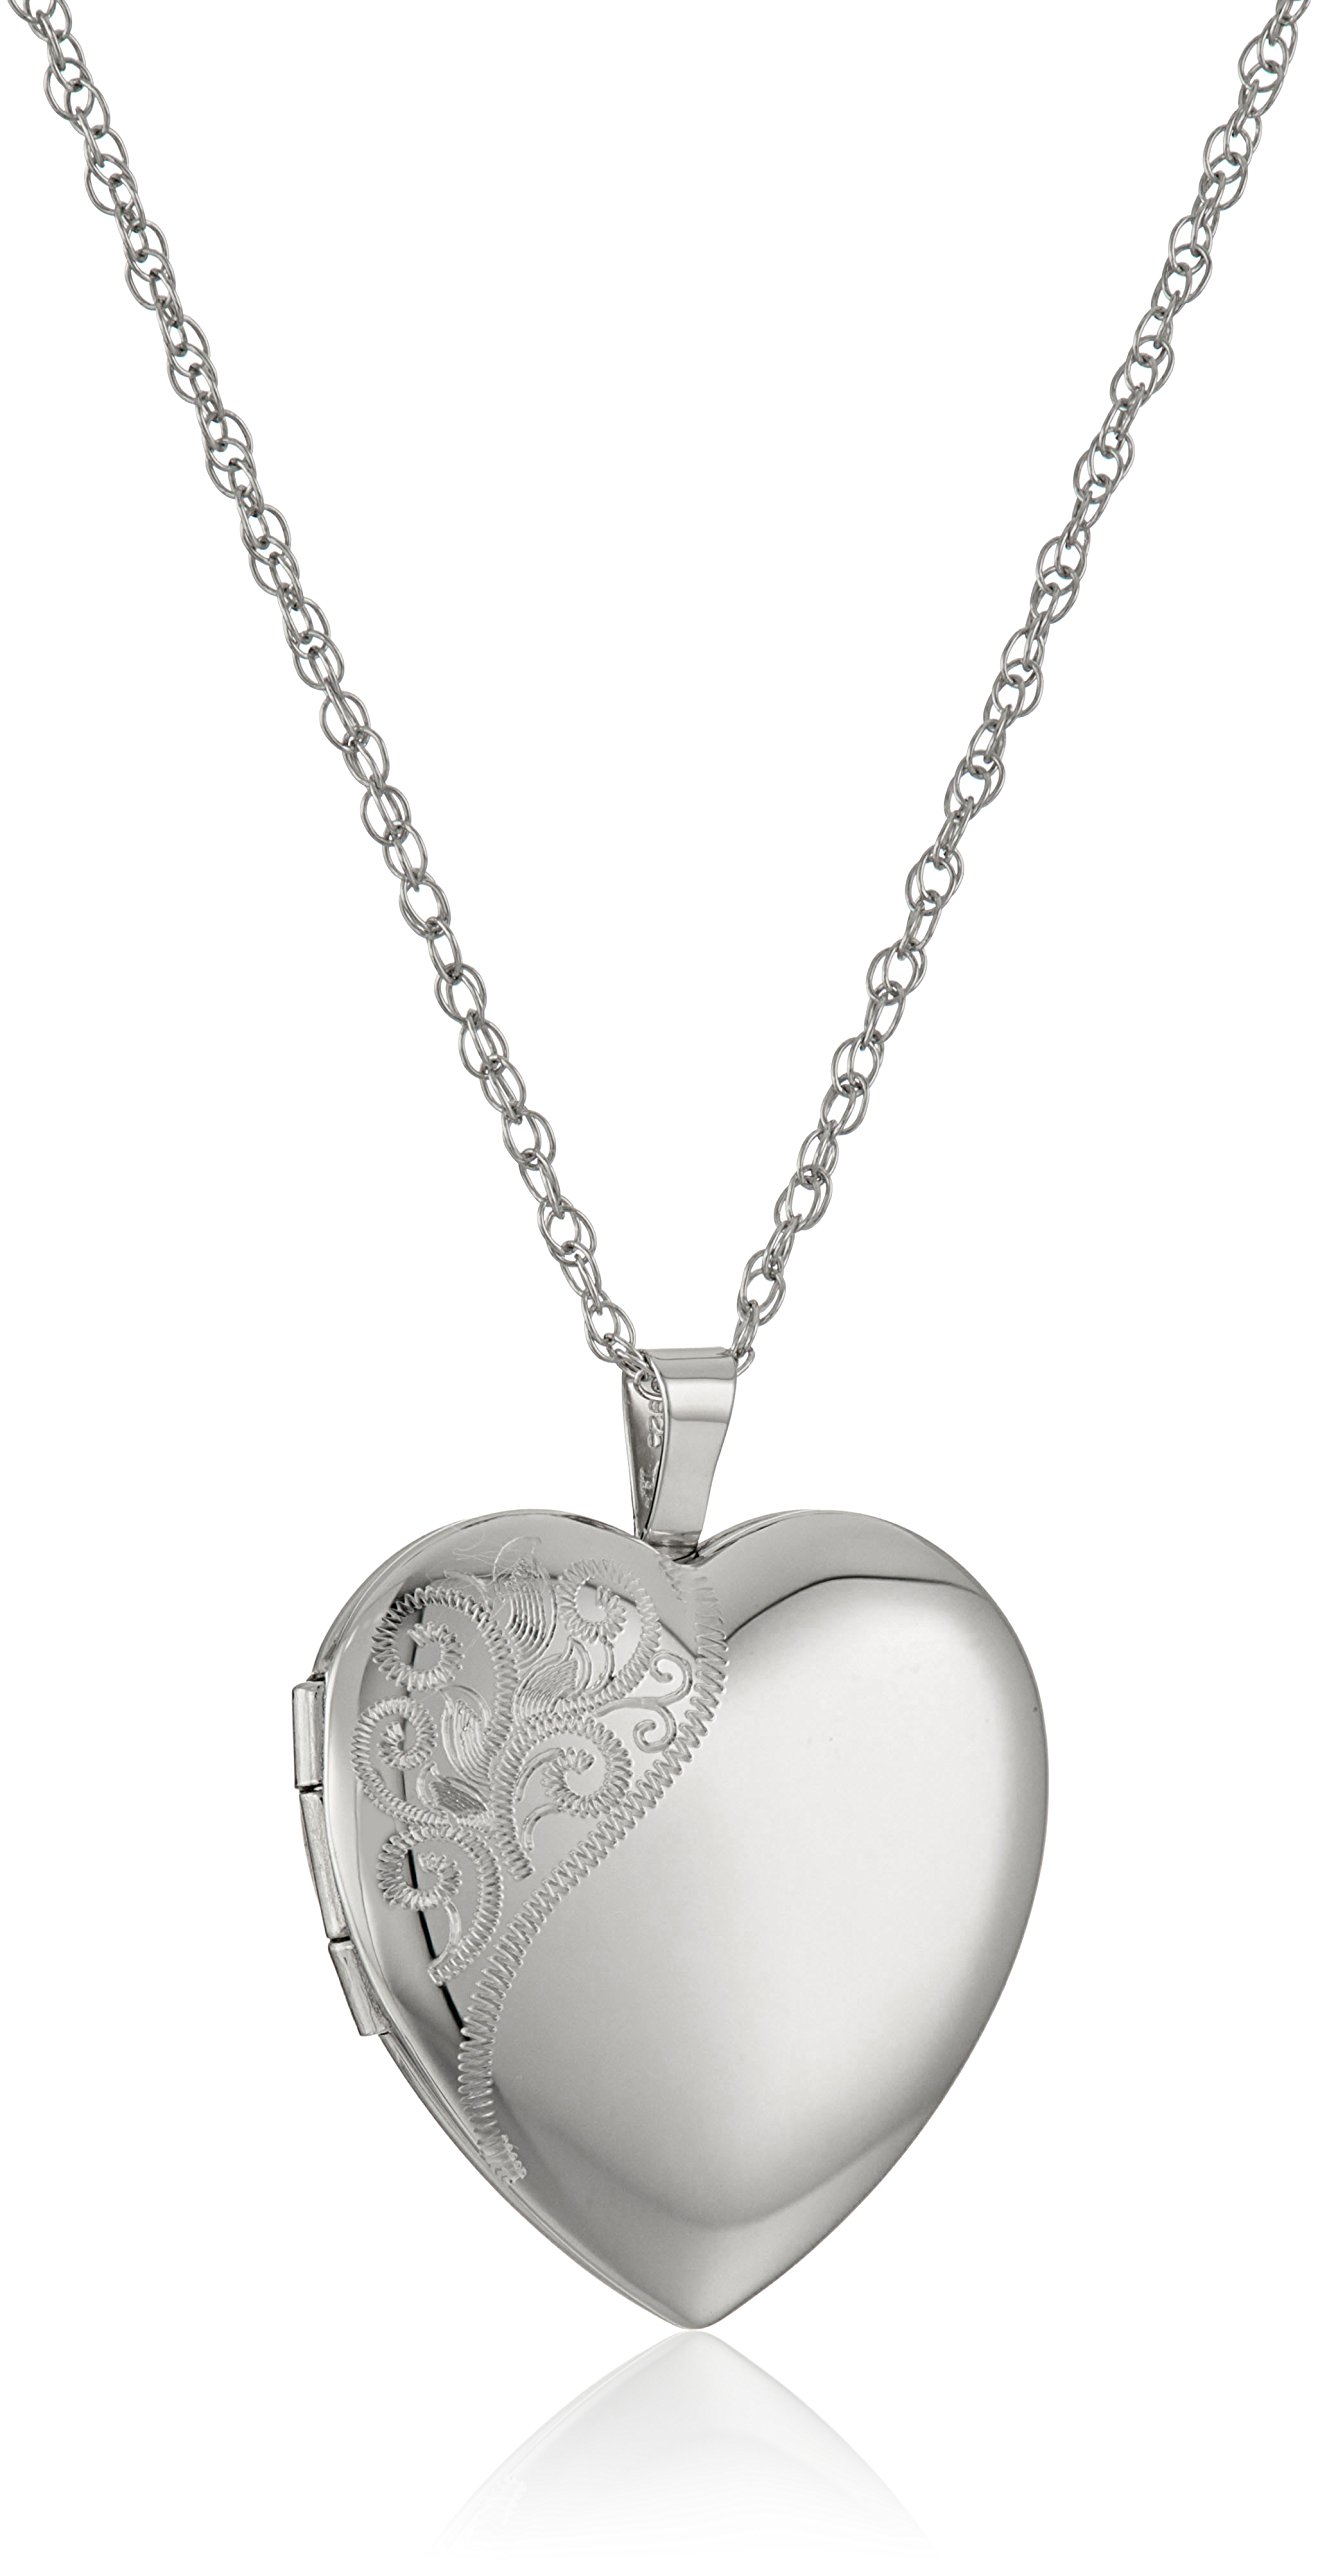 Sterling Silver Large Hand Engraved Floral Heart Pendant with Satin and Polished Finish Locket Necklace, 20'' by Amazon Collection